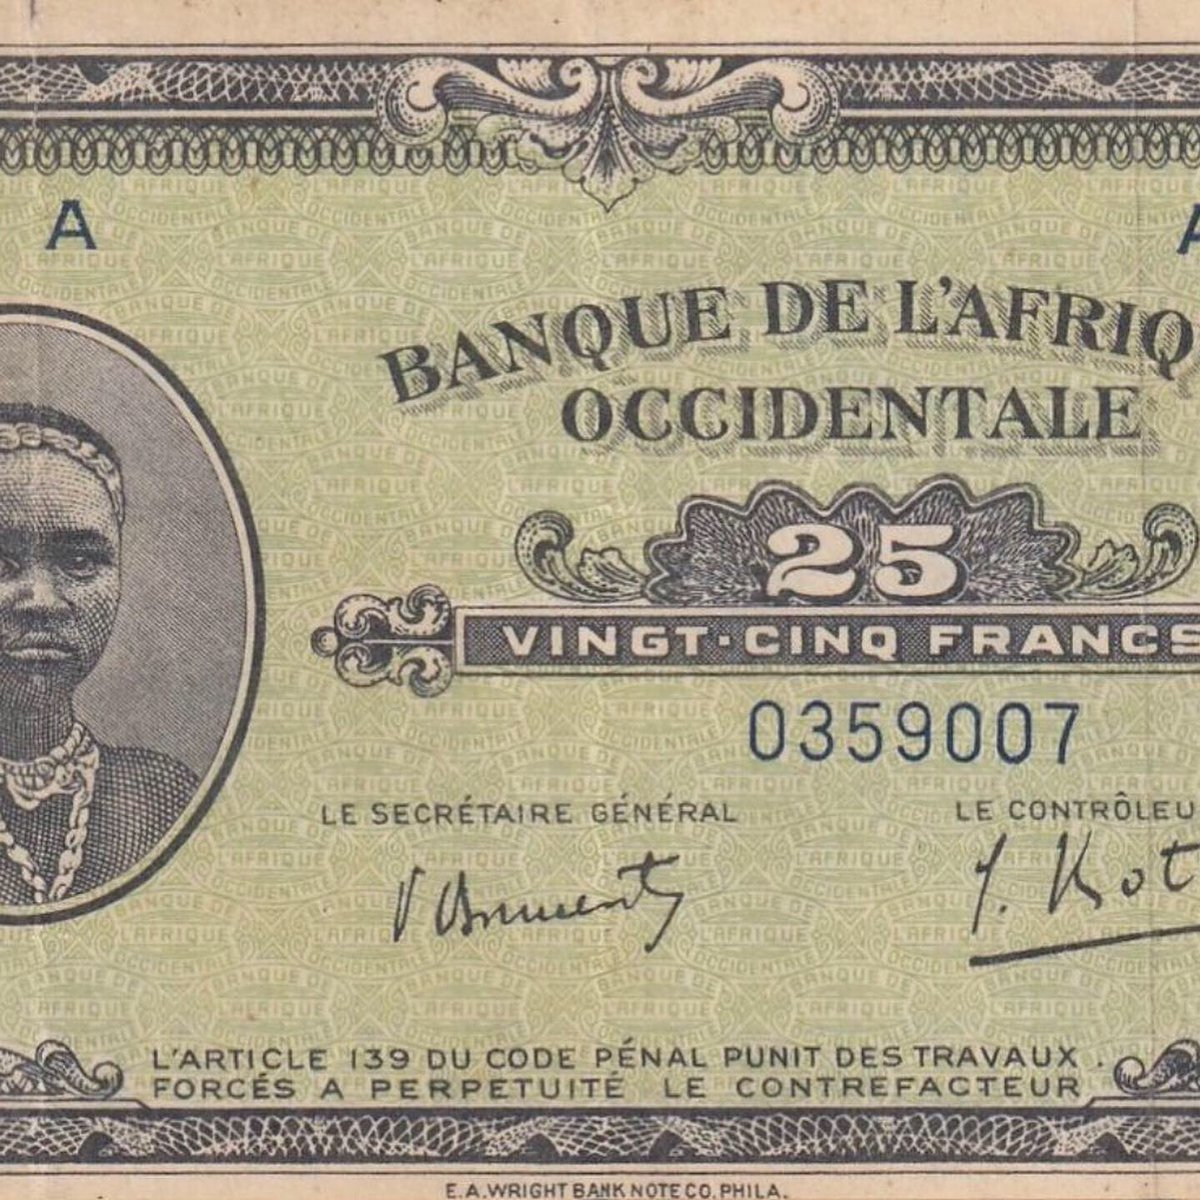 West African States, 25 Francs, 1942.#westafrican #collection #collection #benin #ghana #nigeria #niger #liberia #senegal #caboverde #gambia #mali